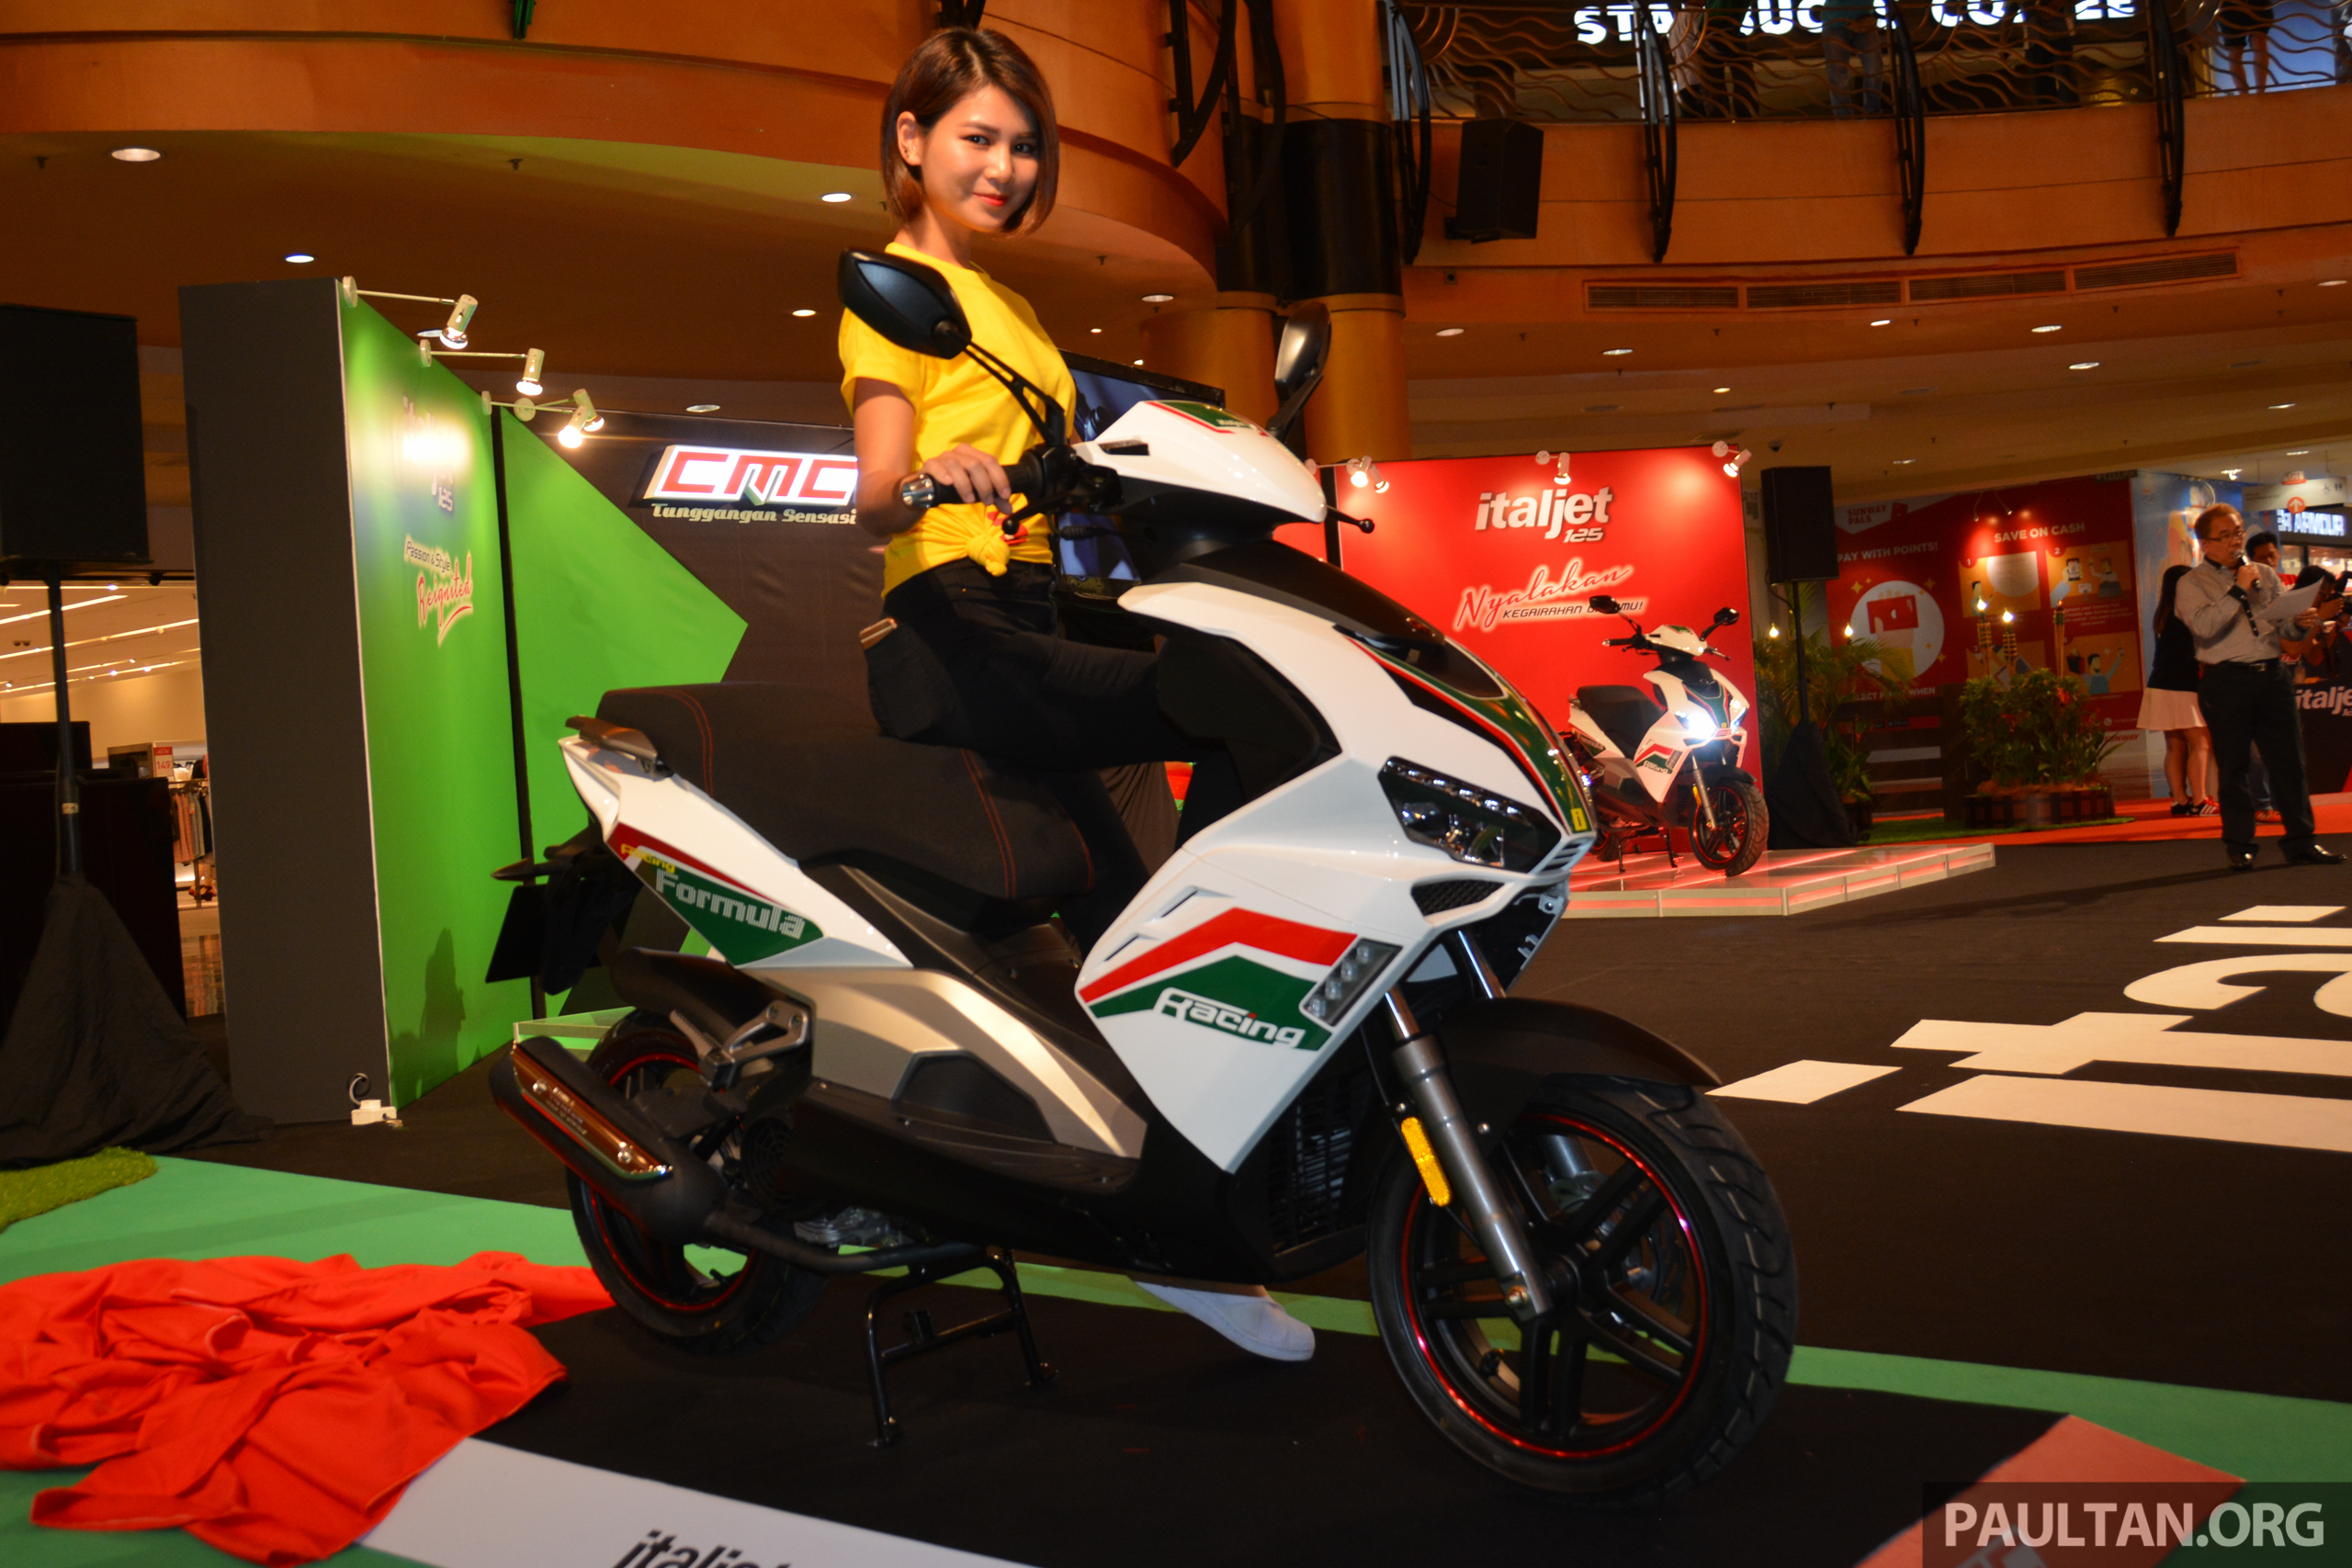 Local Market Tool >> 2016 CMC Italjet 125 scooter in Malaysia - RM6,996